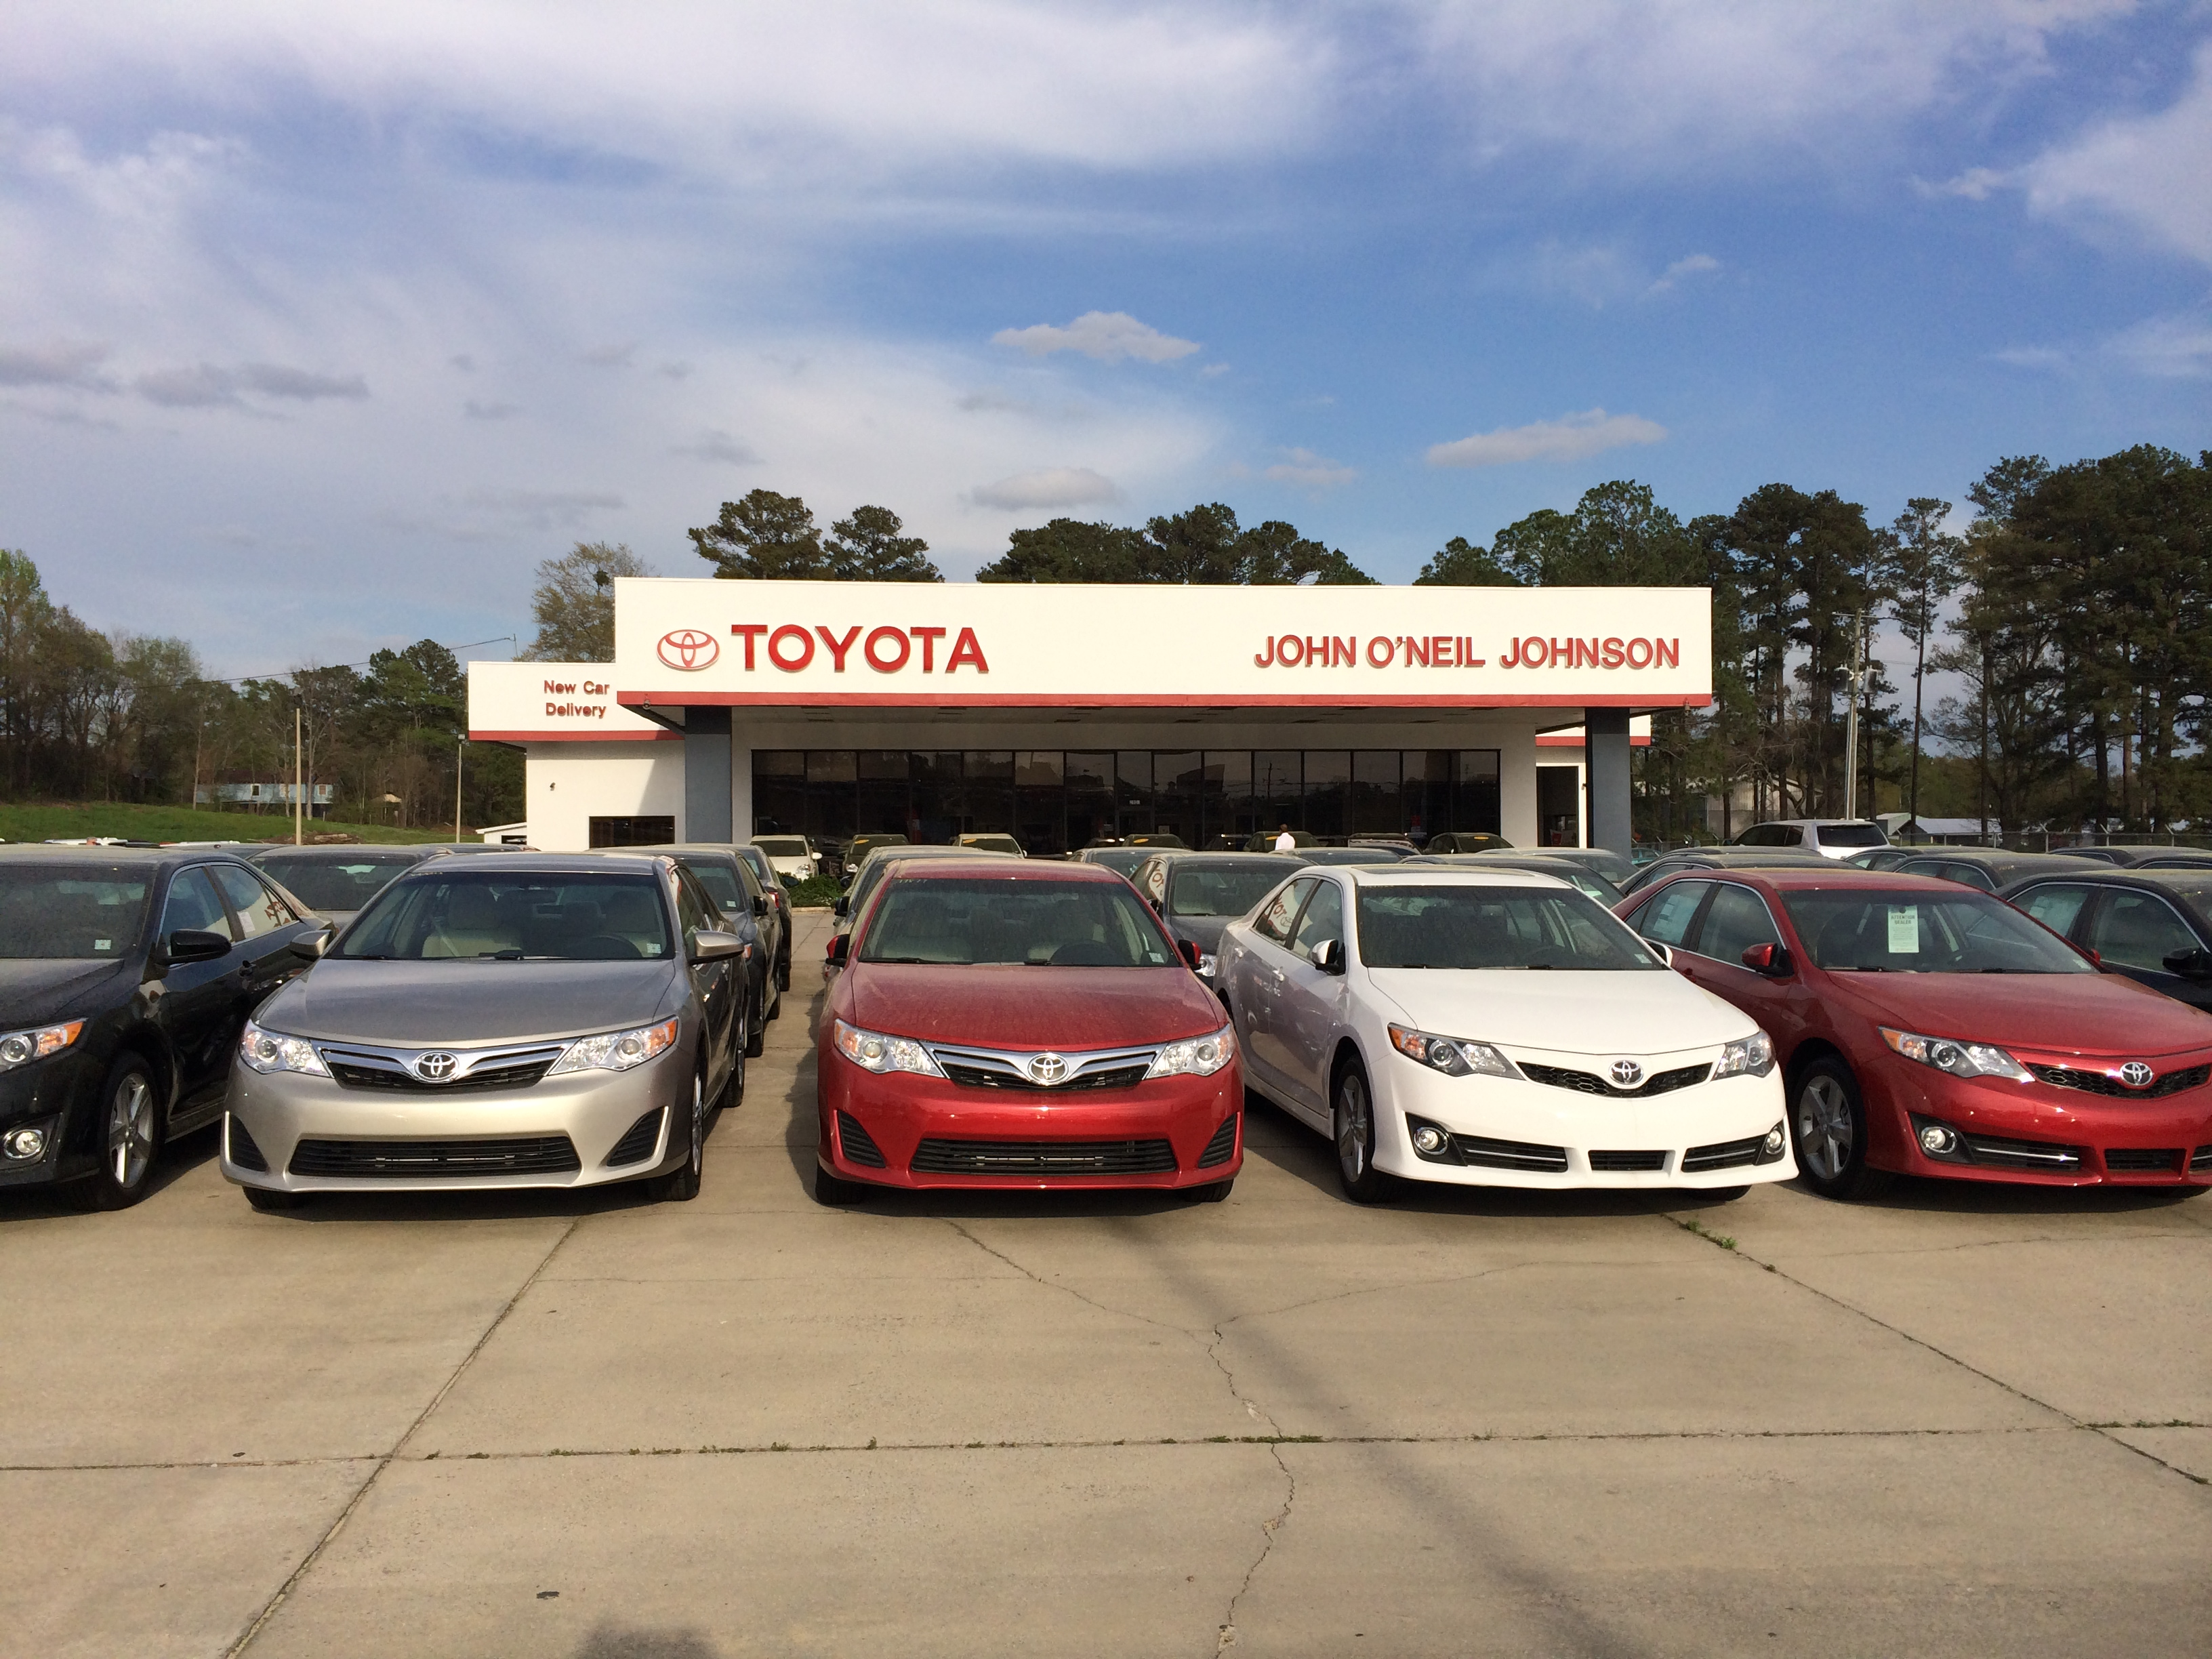 For maps and directions to john o neil johnson toyota view the map to the right for reviews of john o neil johnson toyota see below